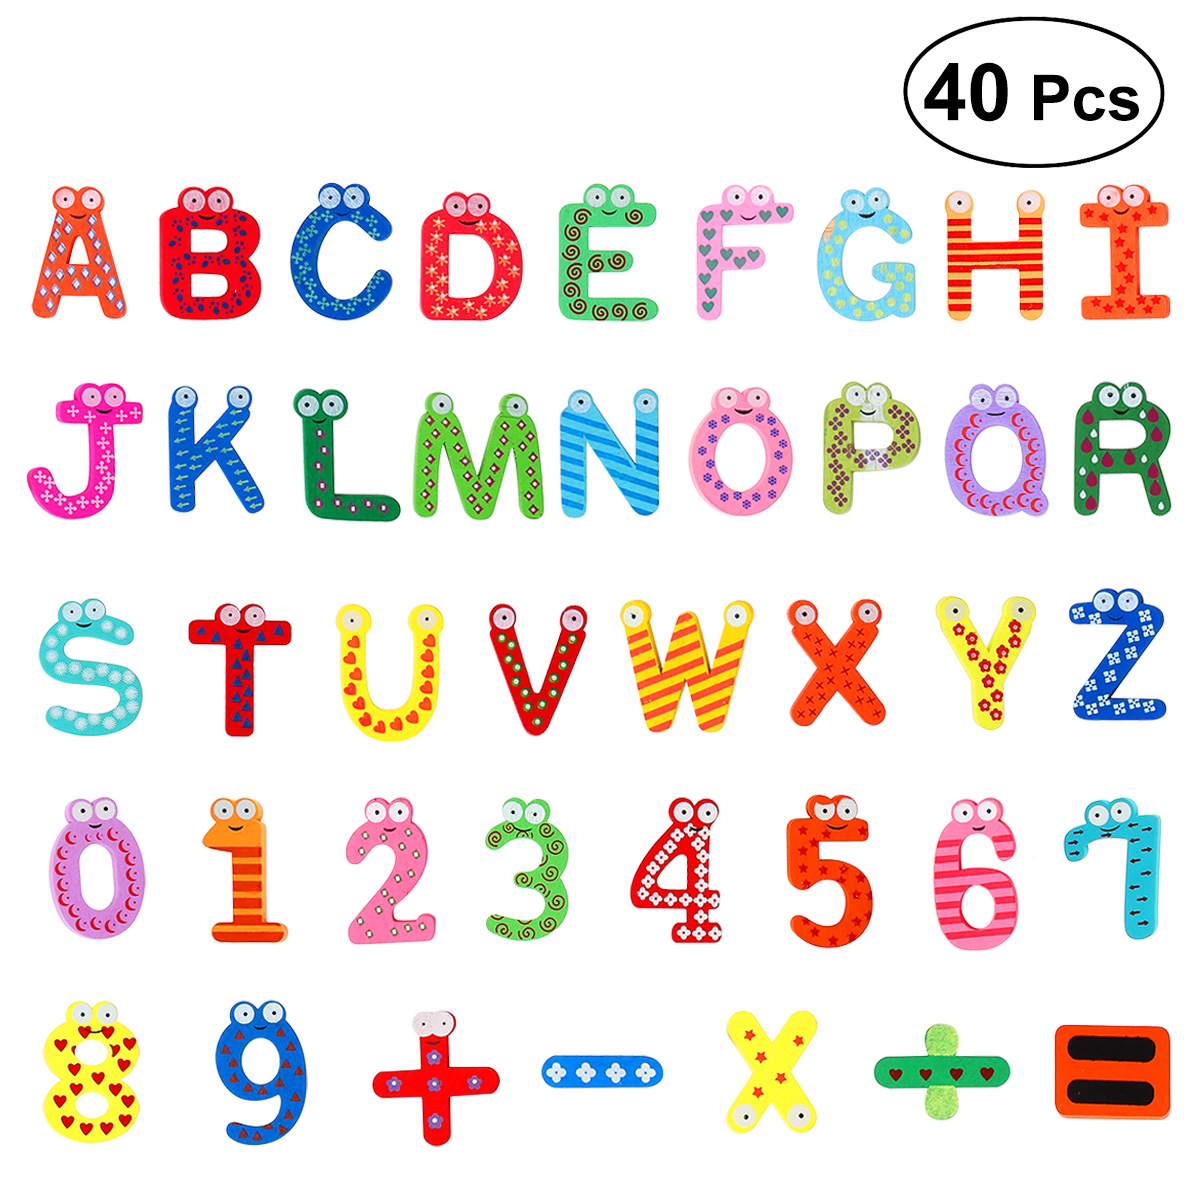 Gift Set Magnets Teaching Alphabet Set Of 40 Colorful Magnetic Fridge Letters & Numbers Education Learn Cute Kid Baby Toy